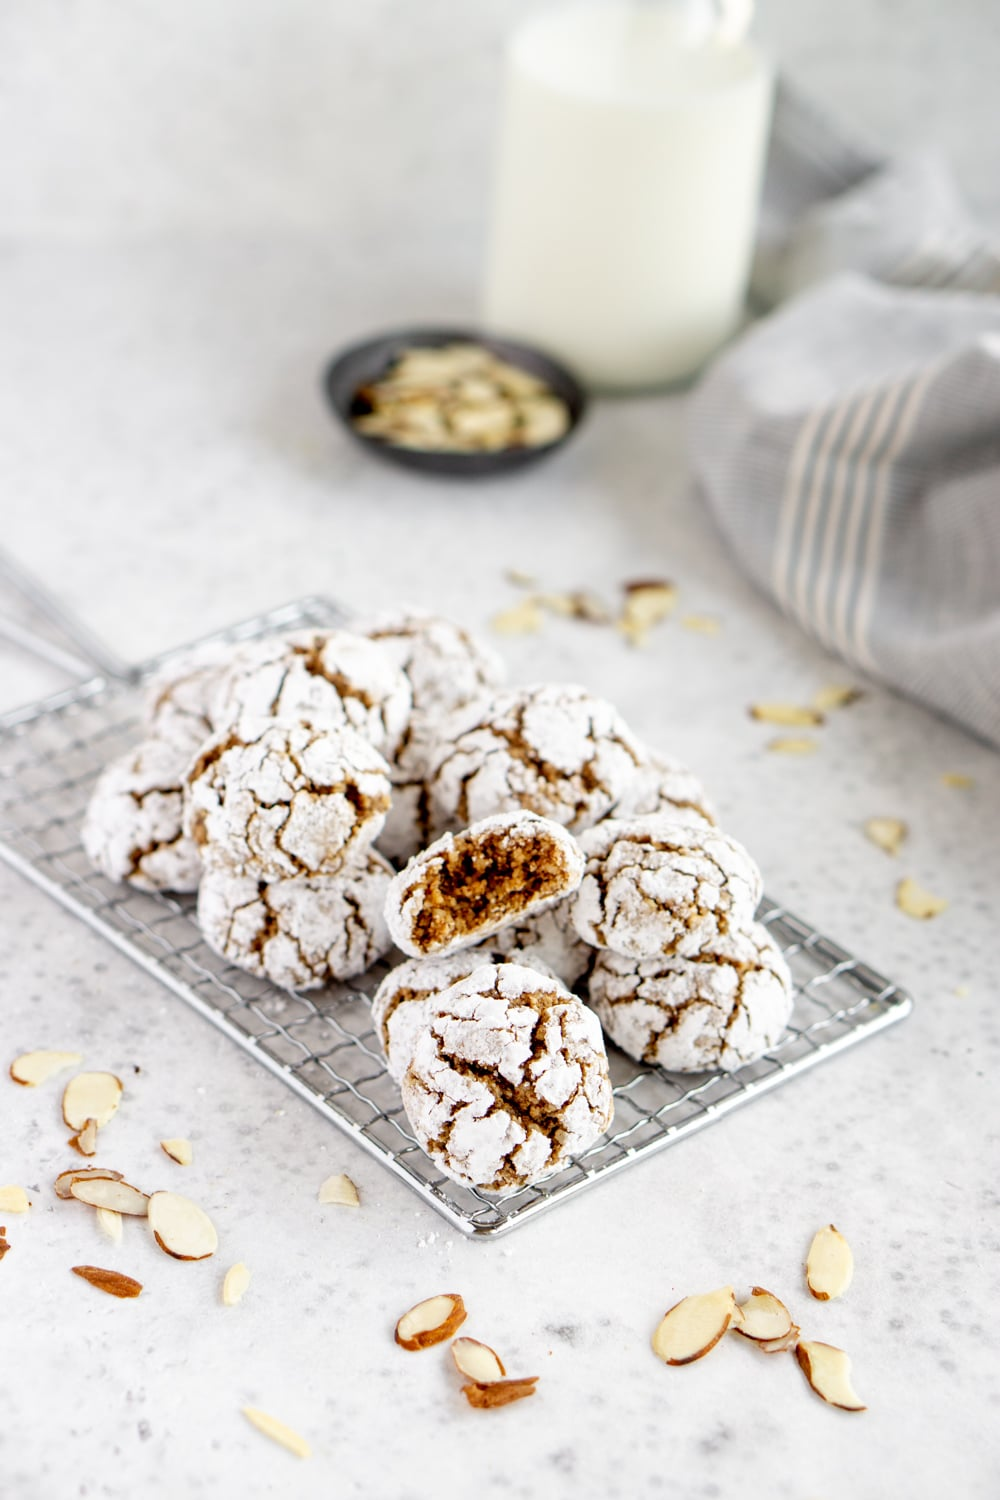 Amaretti cookies on a cookie sheet with milk and almonds in the background